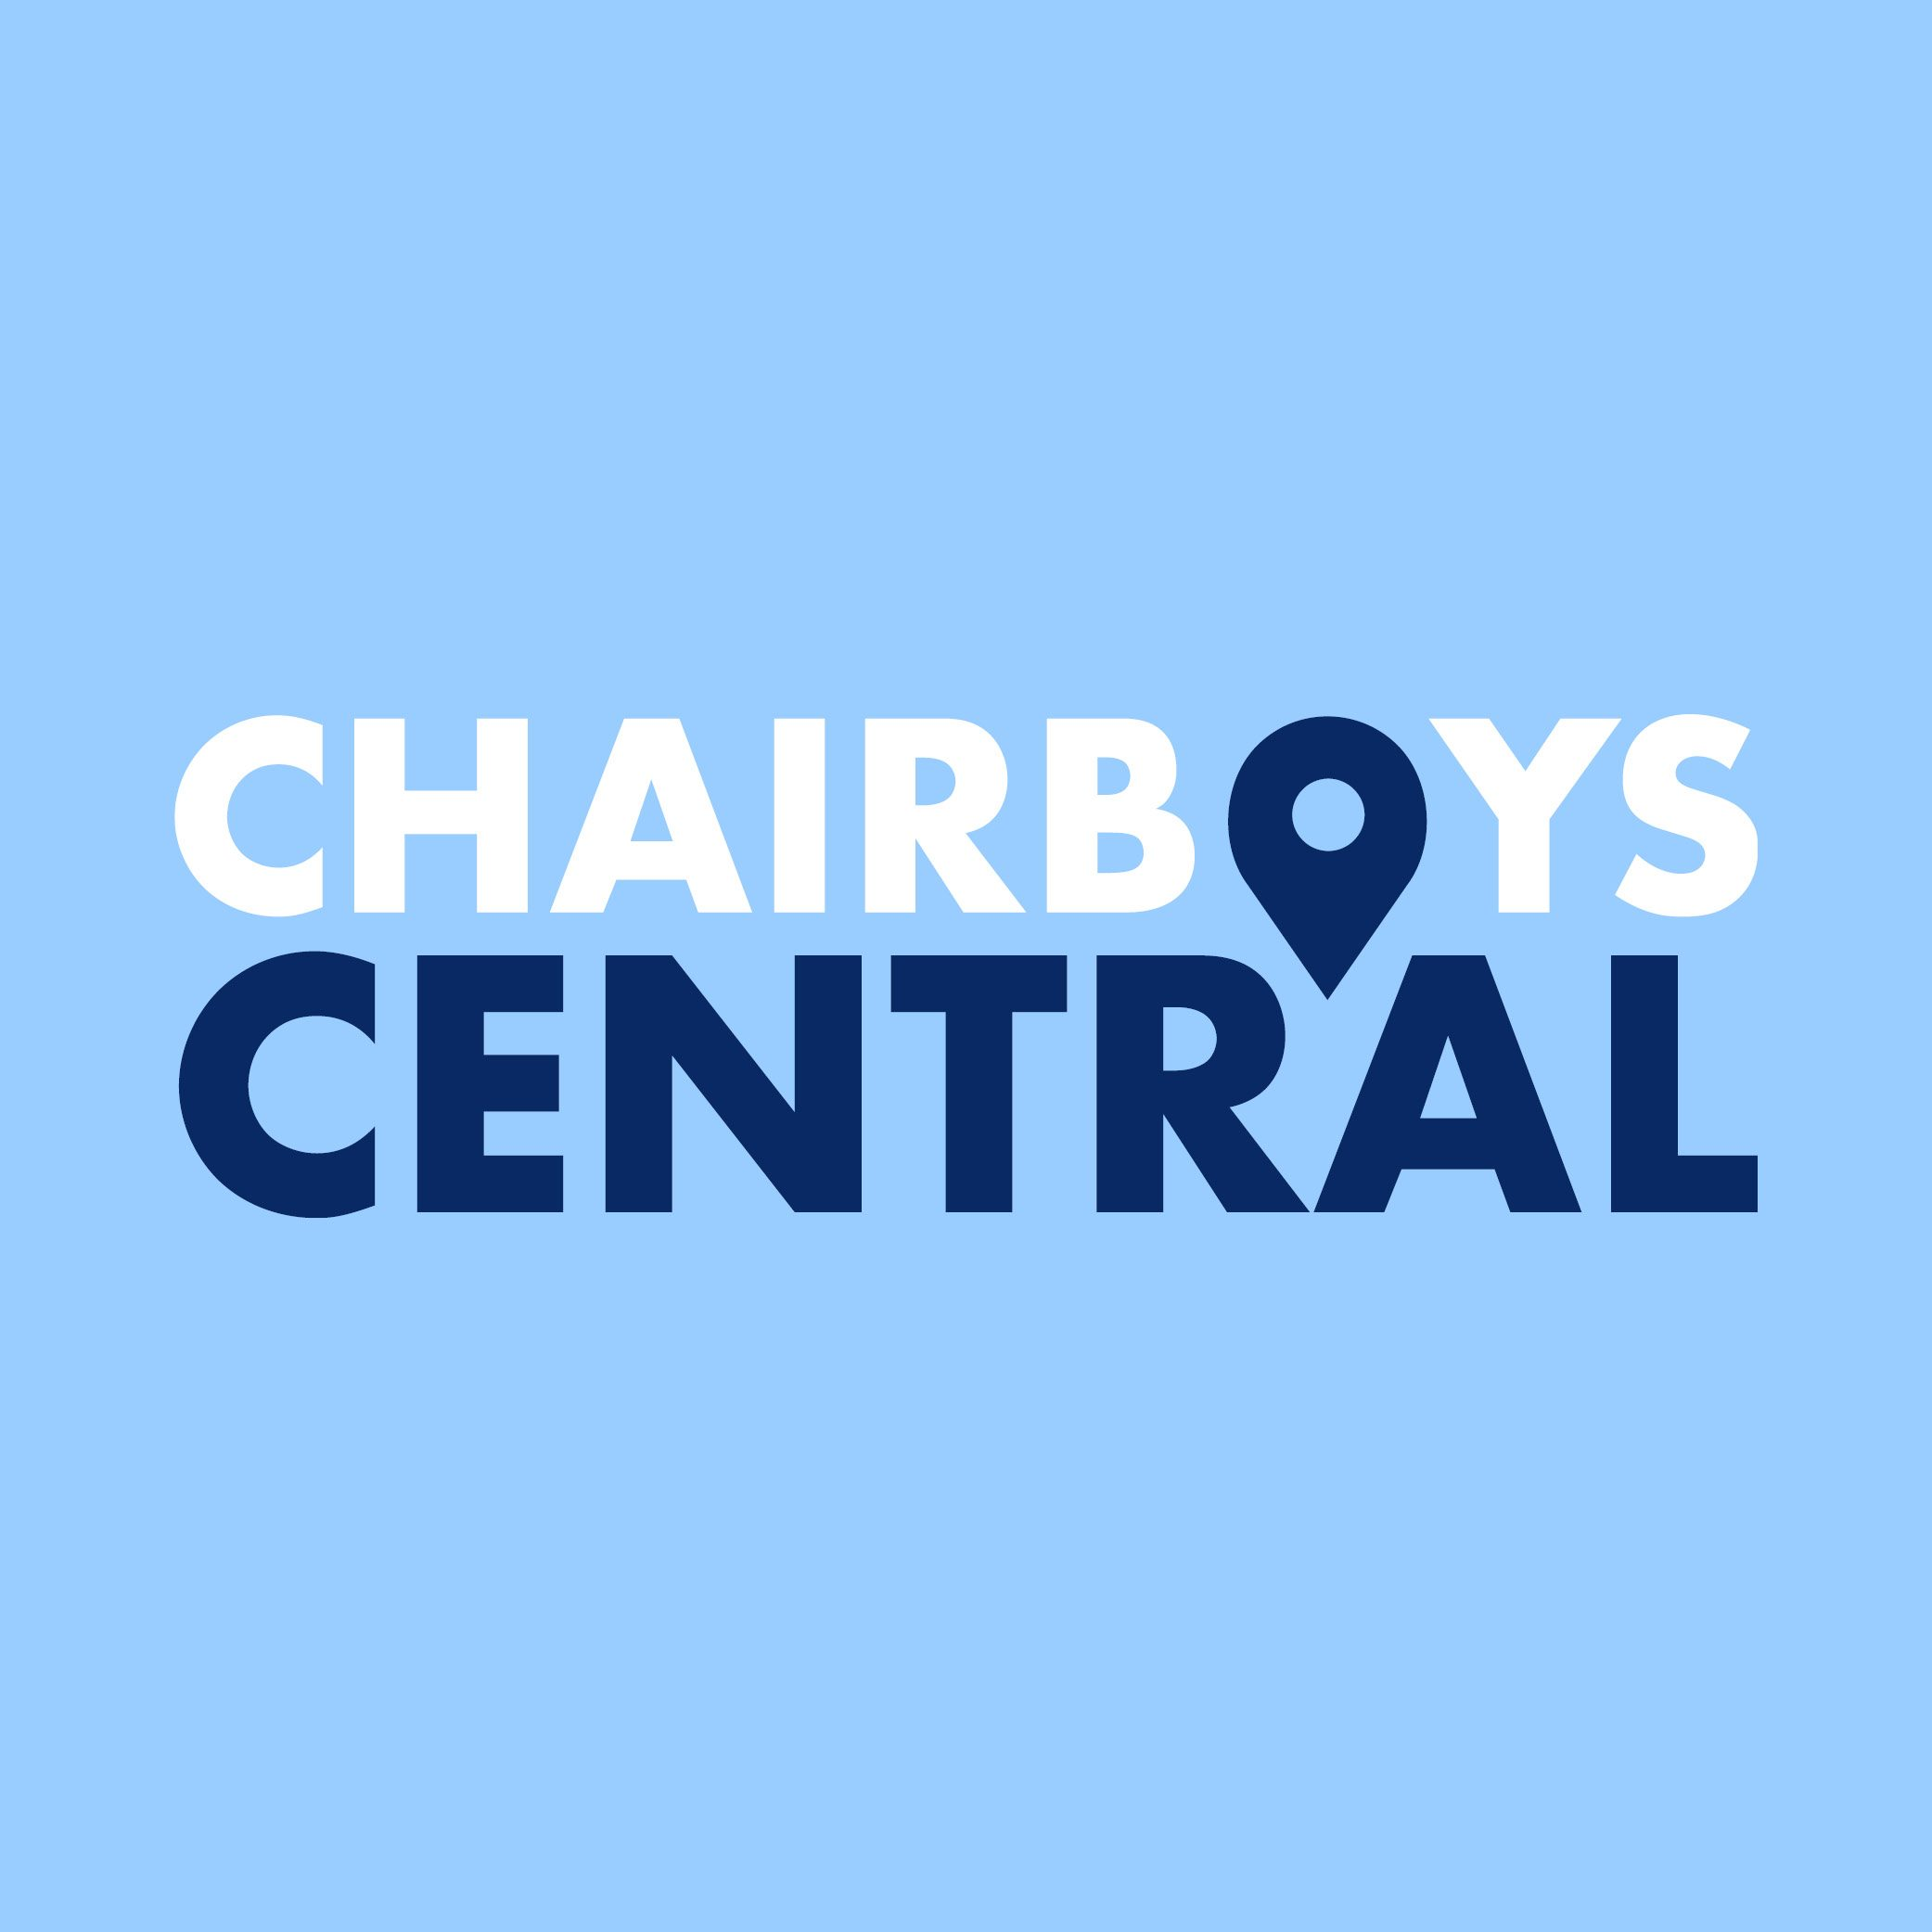 Chairboys Central